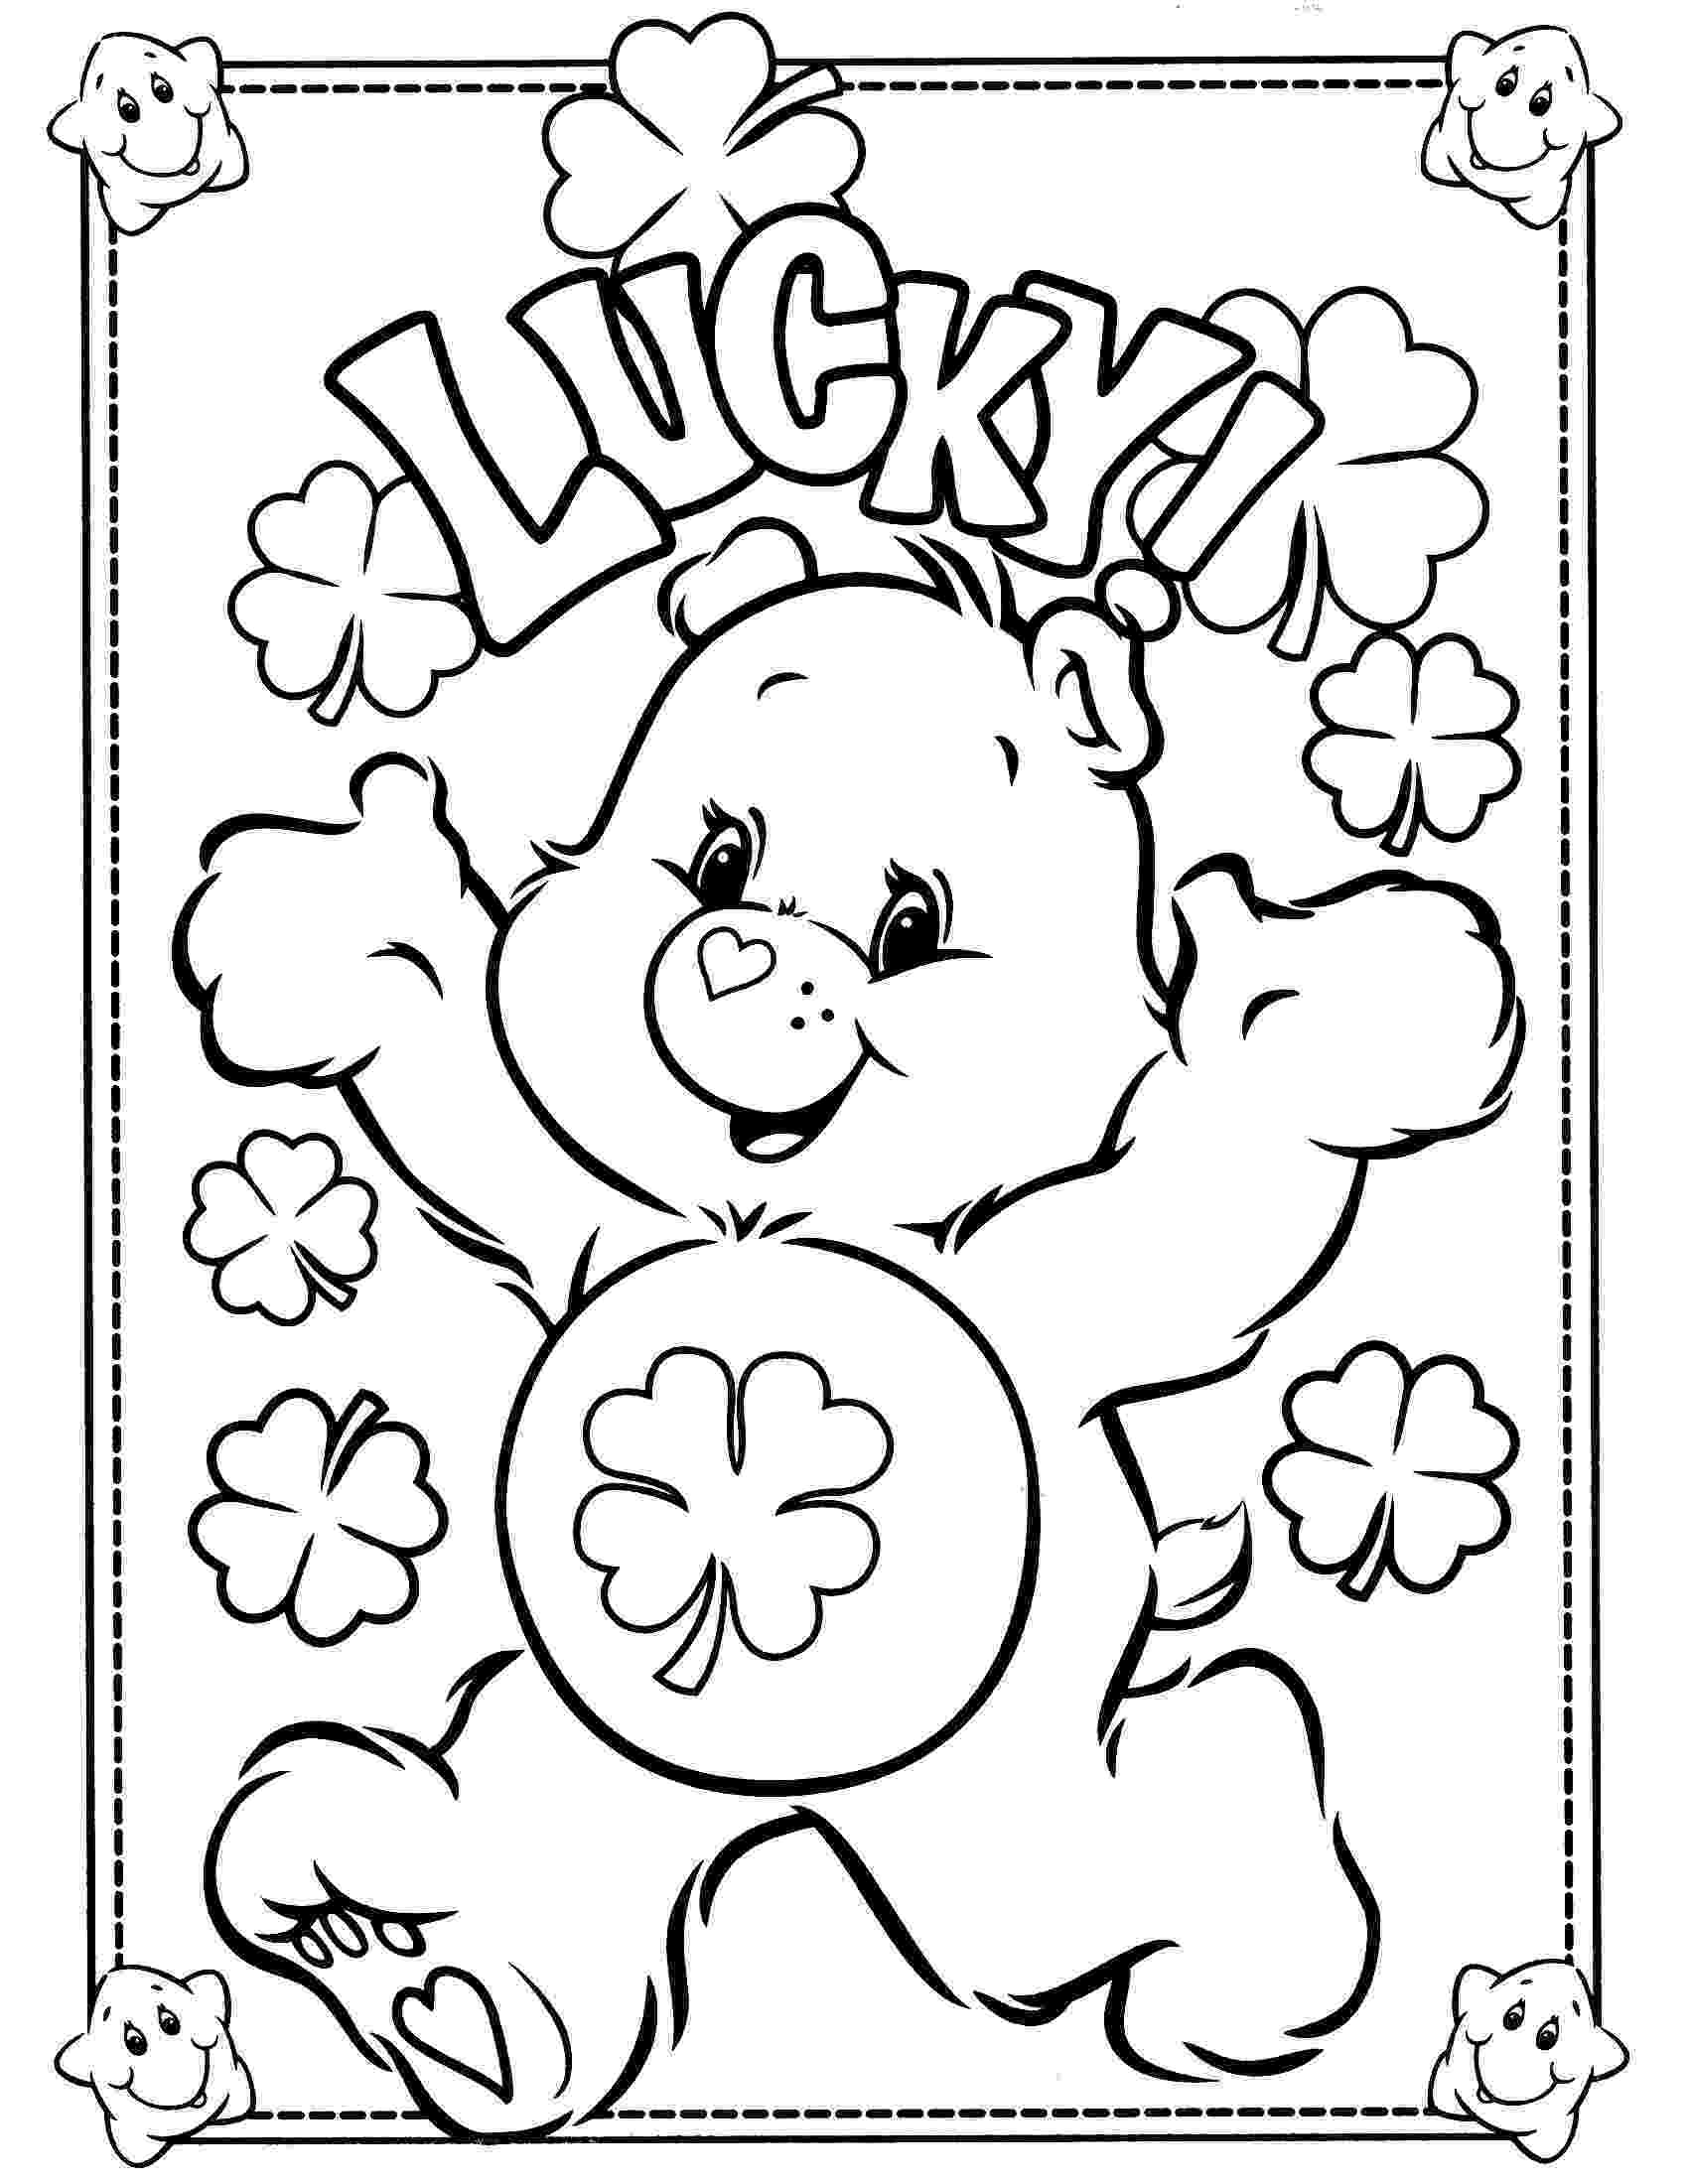 bear pictures to color free printable teddy bear coloring pages for kids pictures color to bear